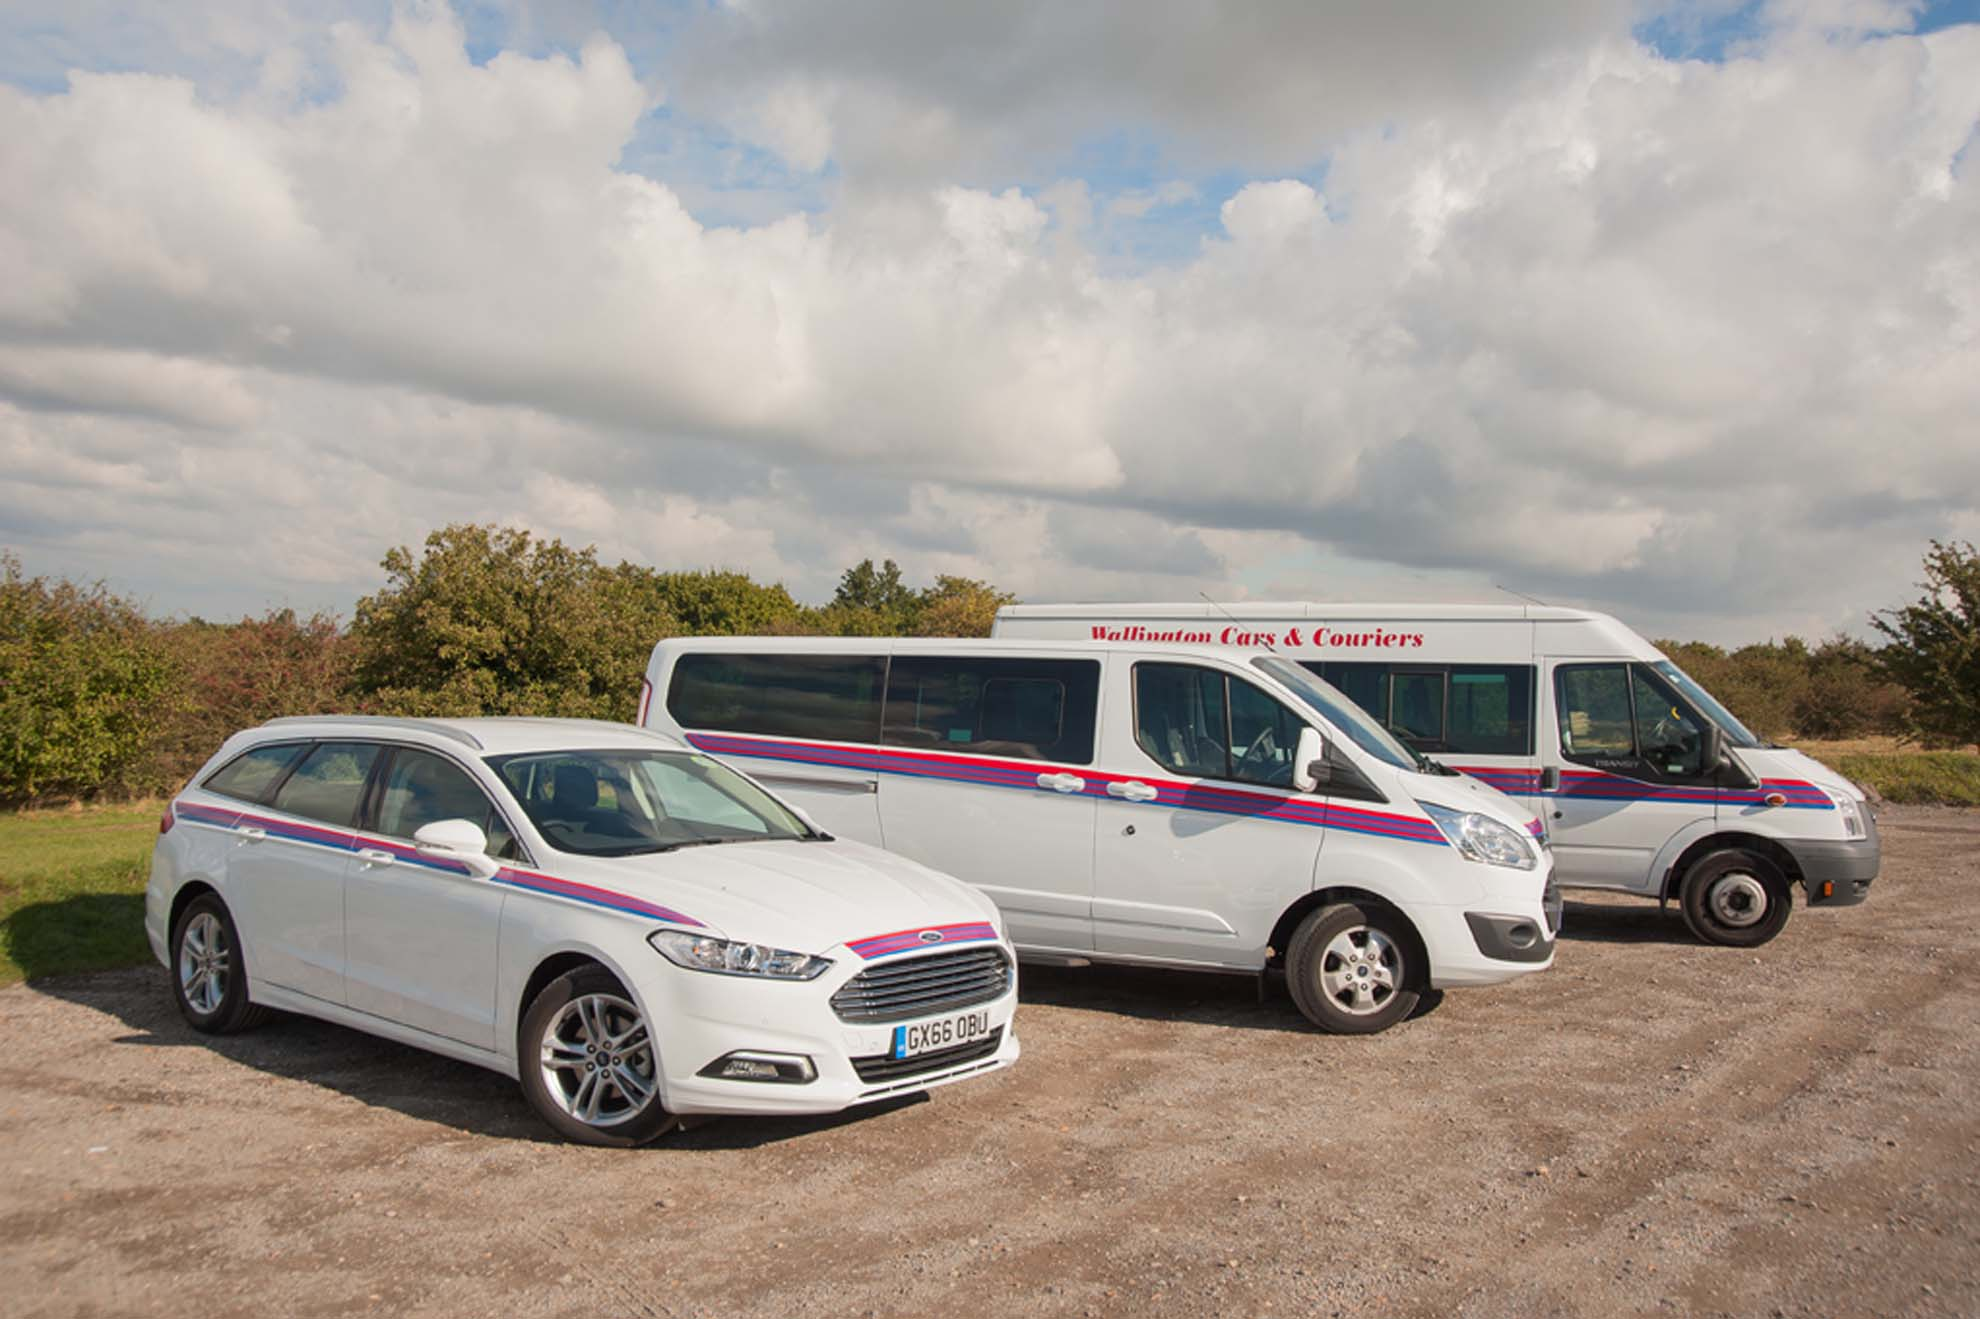 Passenger transport services South London and Surrey